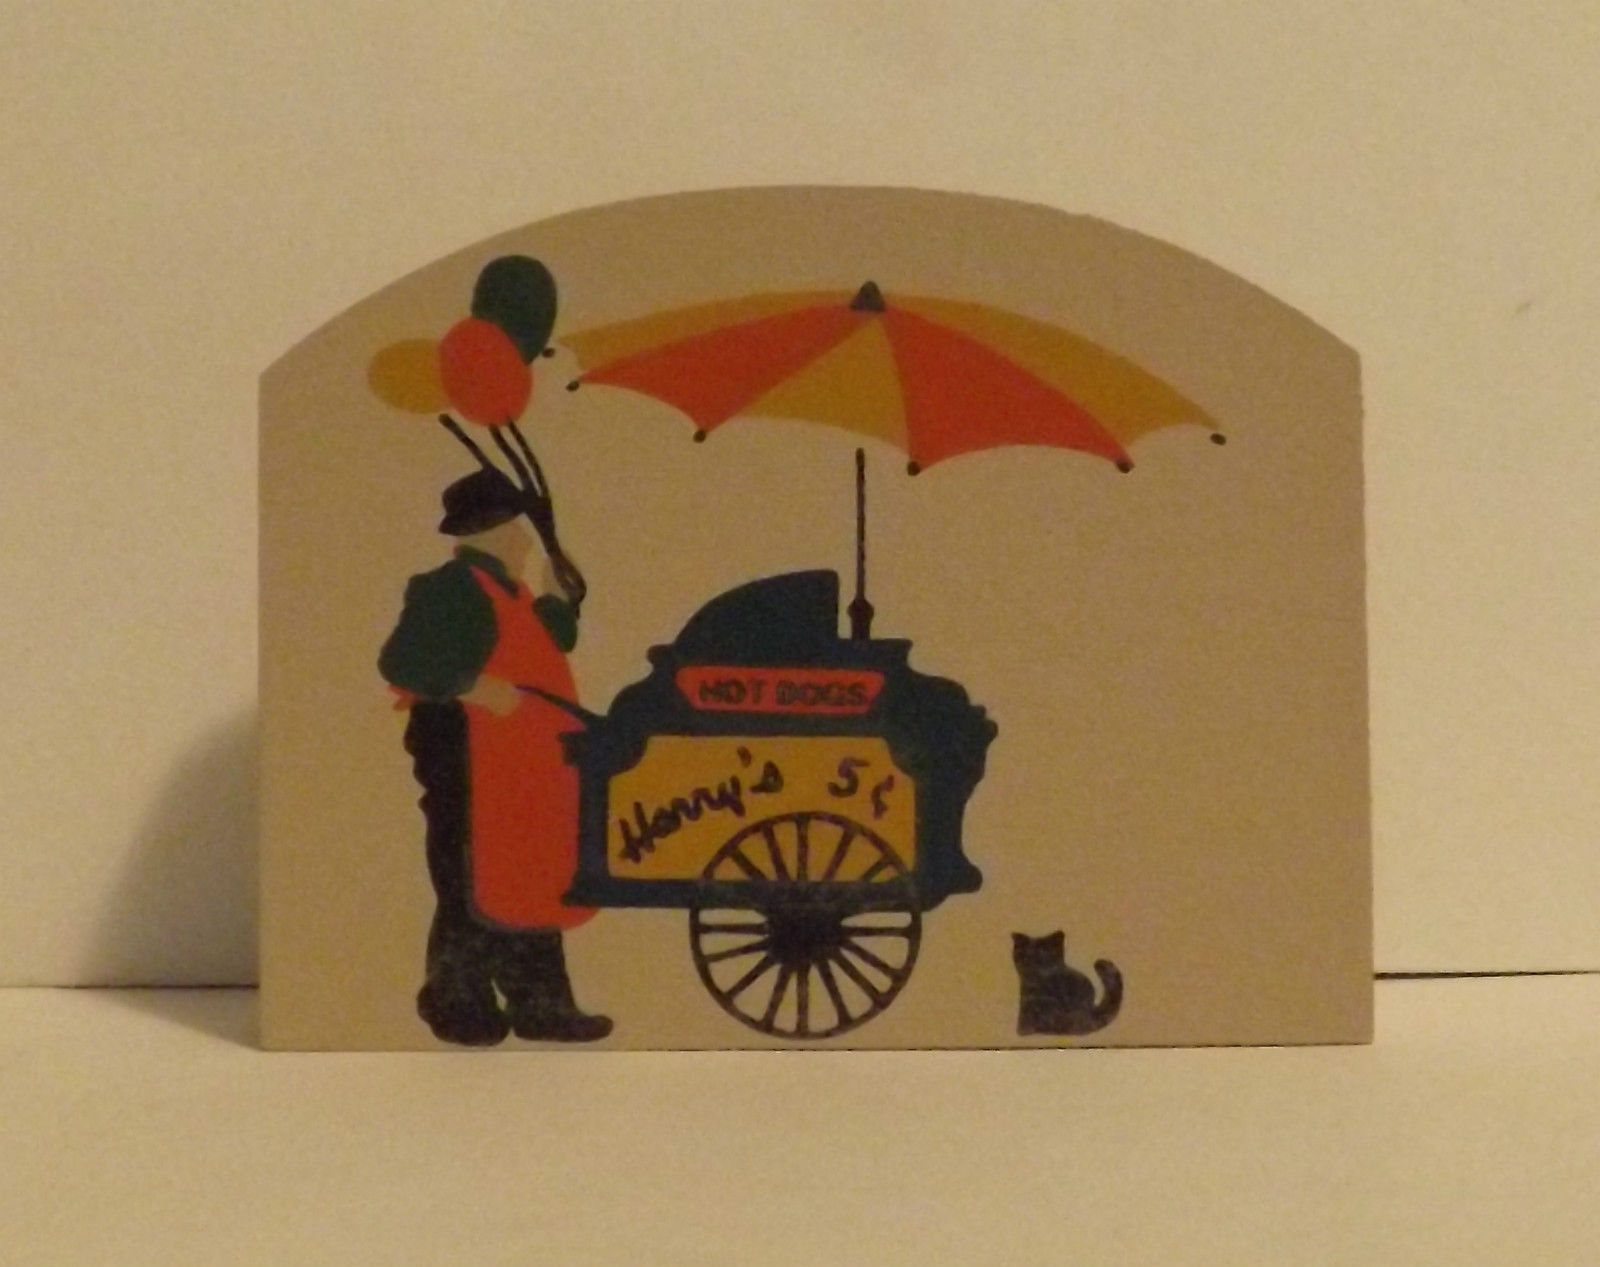 Cats Meow Accessory Henry's Hot Dog Stand image 1